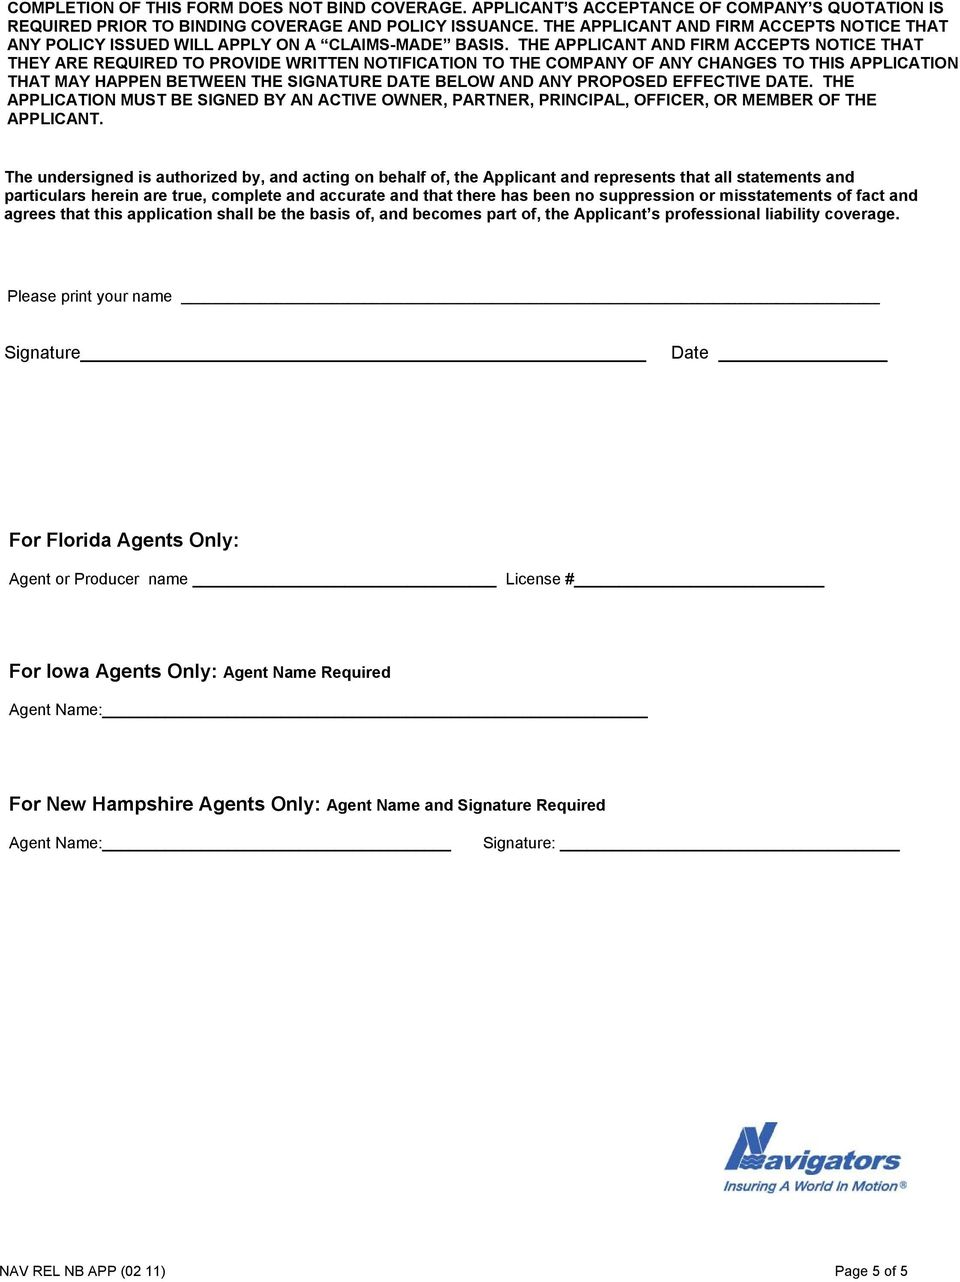 THE APPLICANT AND FIRM ACCEPTS NOTICE THAT THEY ARE REQUIRED TO PROVIDE WRITTEN NOTIFICATION TO THE COMPANY OF ANY CHANGES TO THIS APPLICATION THAT MAY HAPPEN BETWEEN THE SIGNATURE DATE BELOW AND ANY